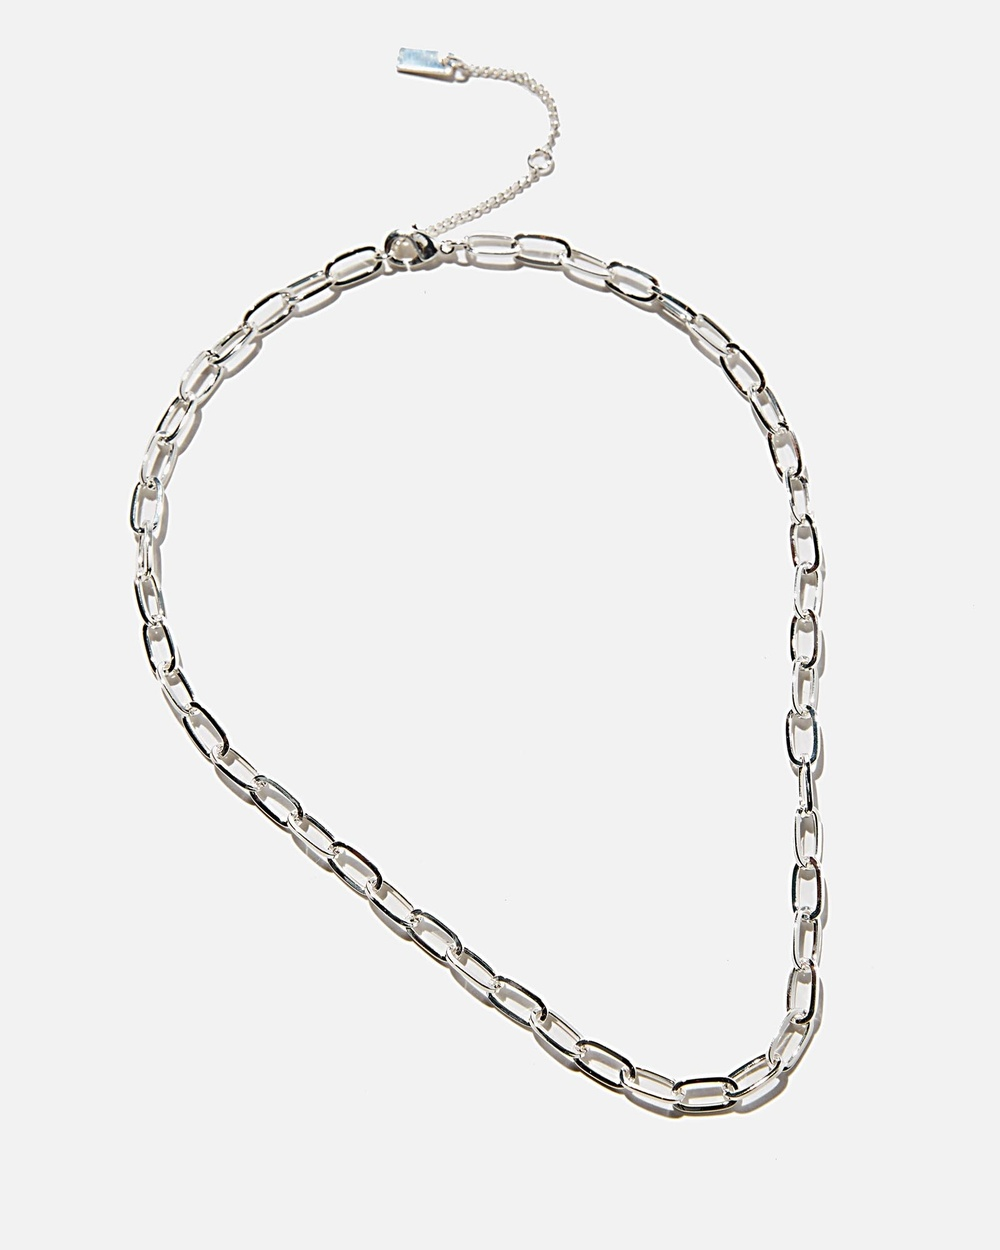 Rubi Premium Single Chain Necklace Jewellery Sterling Silver Plated Open Link